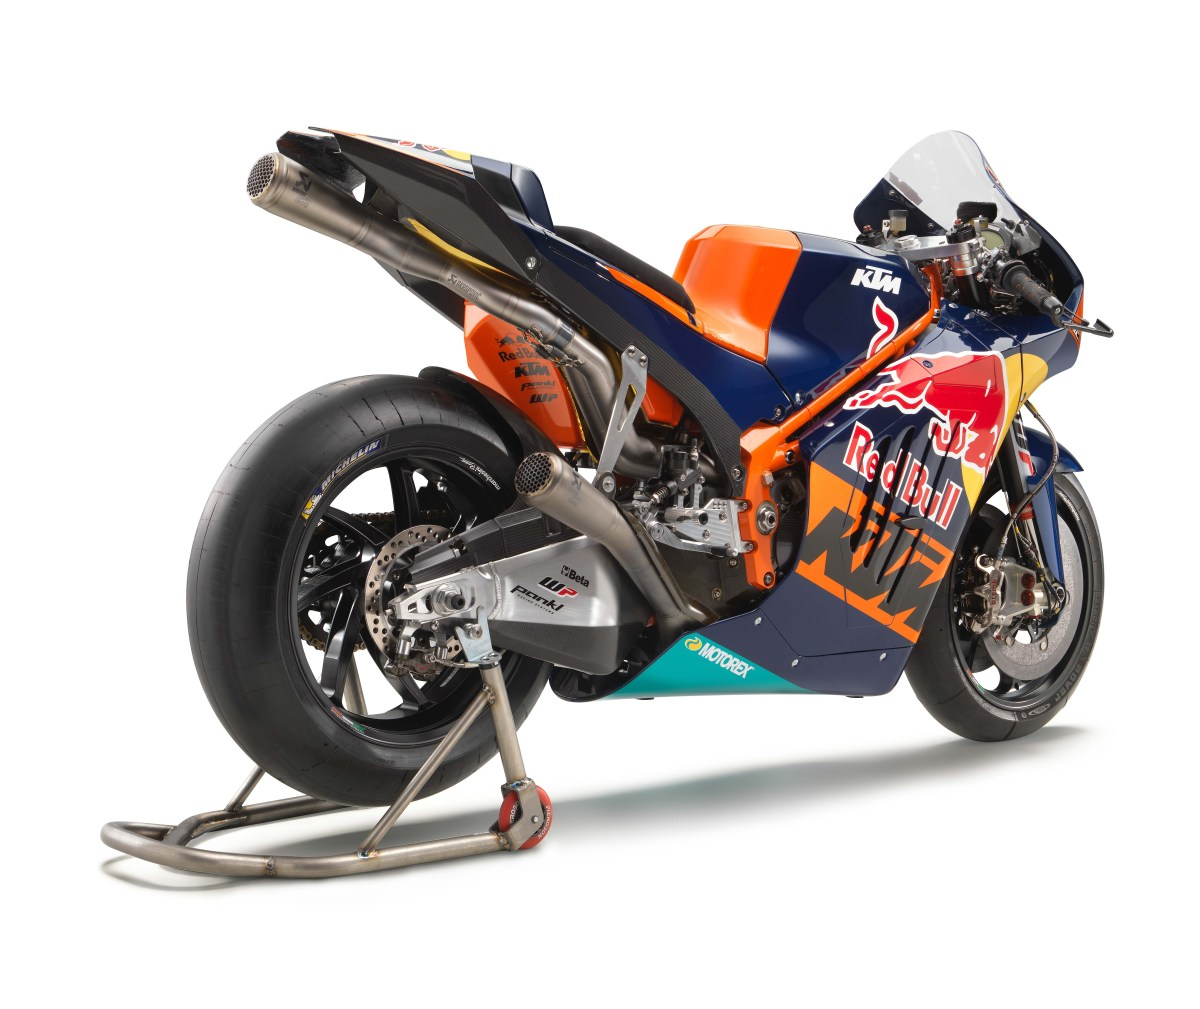 The KTM RC16 should be here in 2018